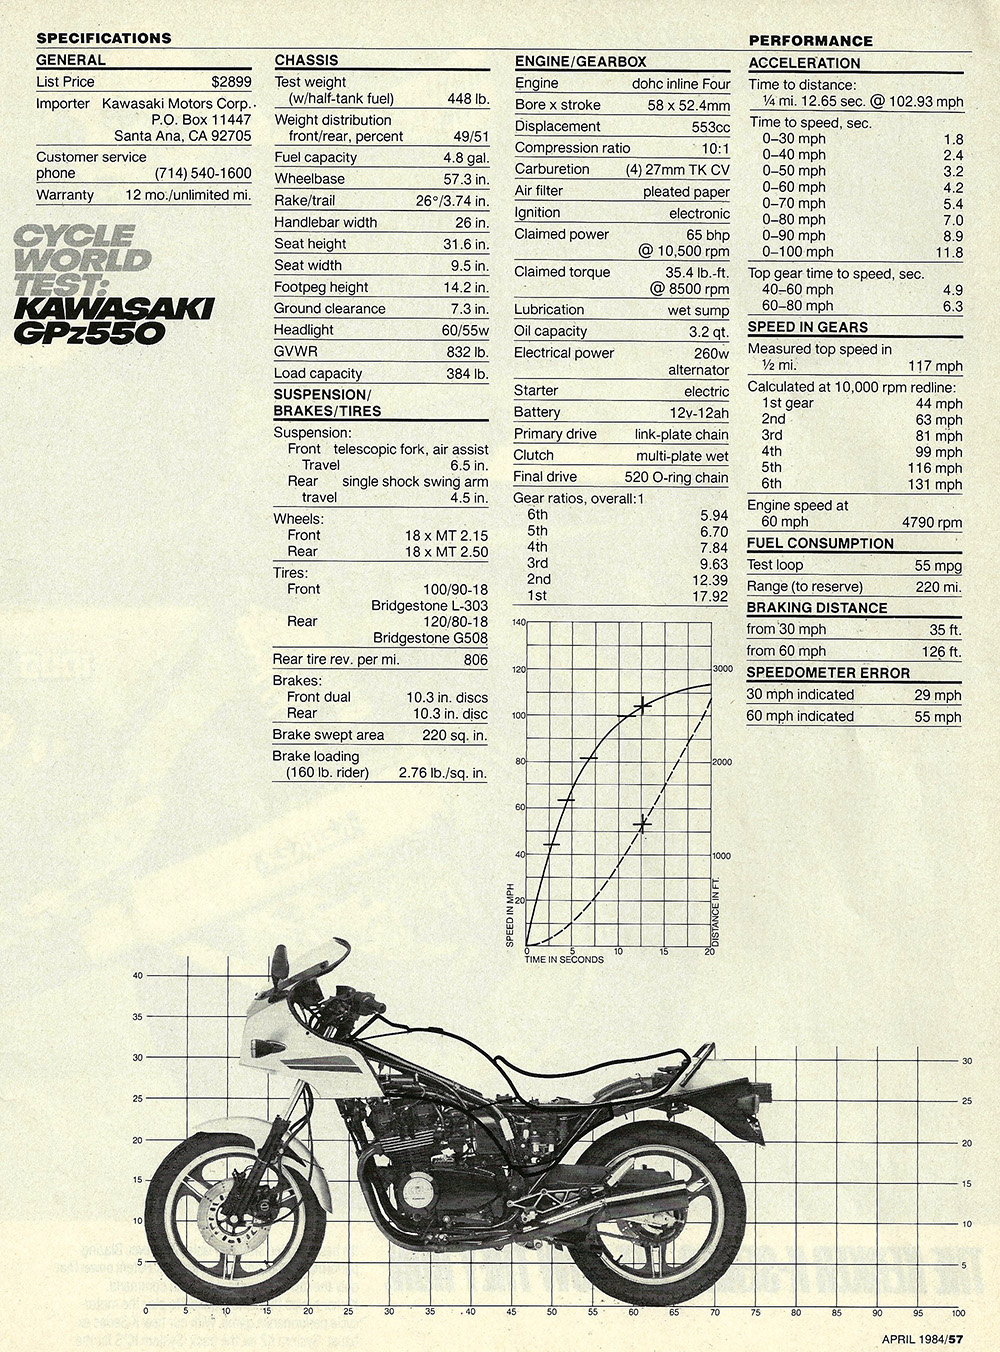 1984 Kawasaki GPz550 road test 06.jpg